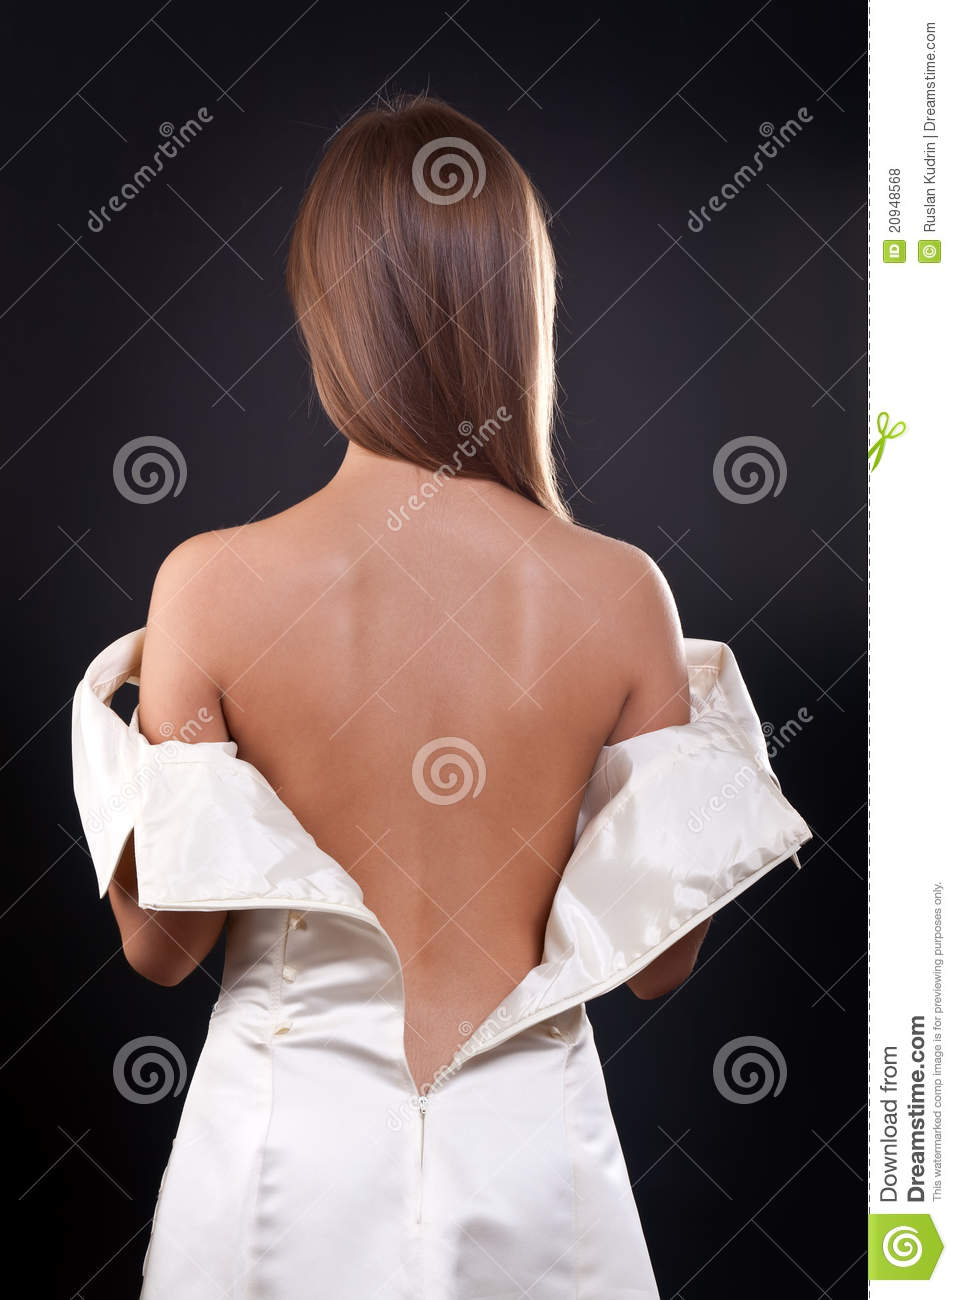 Bare back in the studio royalty free stock photos image 20948568